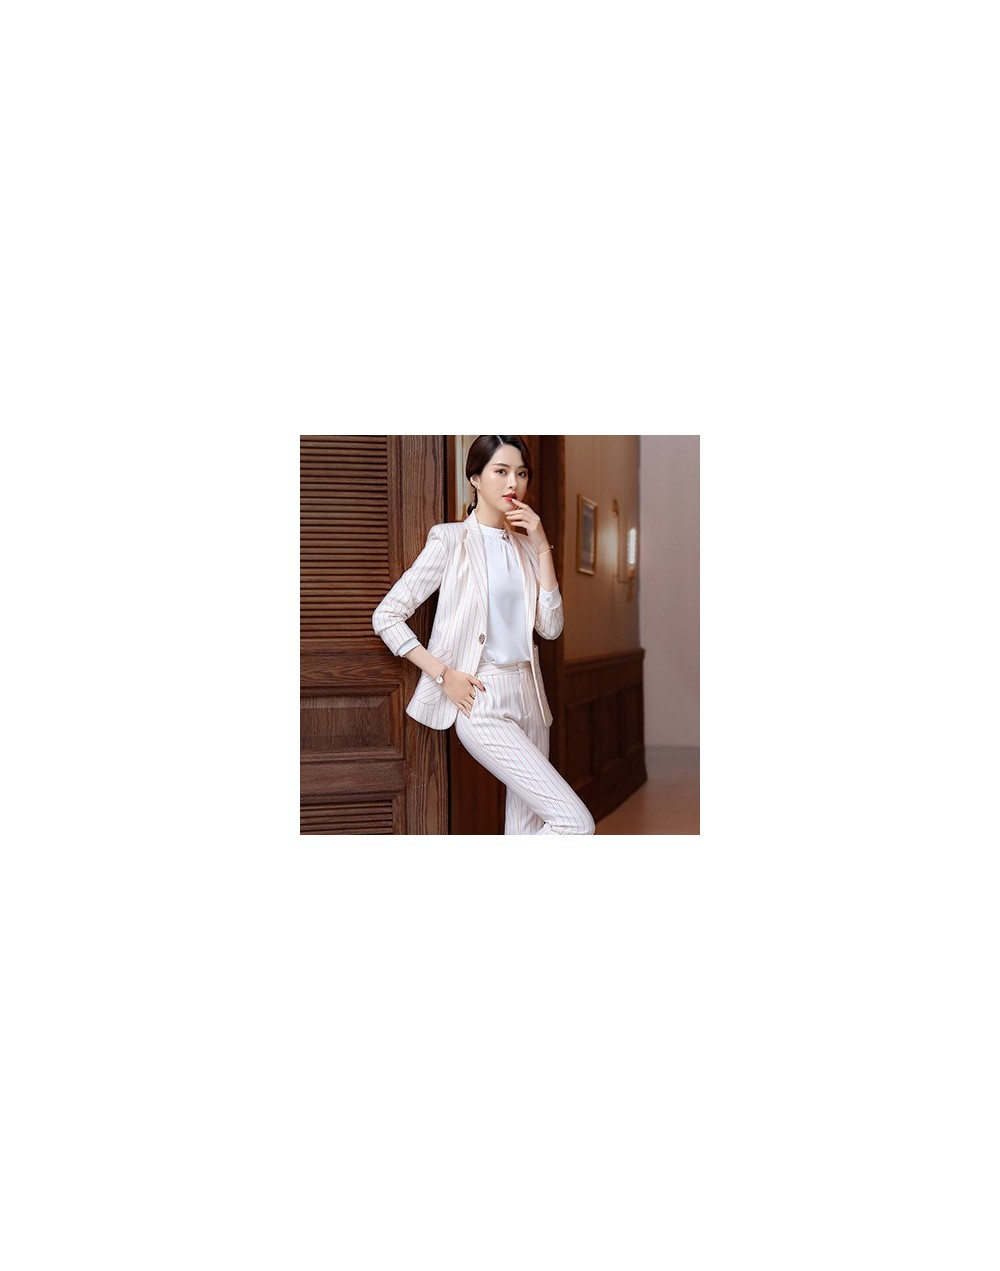 Women blazer with trousers set female suits 2018 officer uniforms designs business striped pant suits largest size 4XL for w...